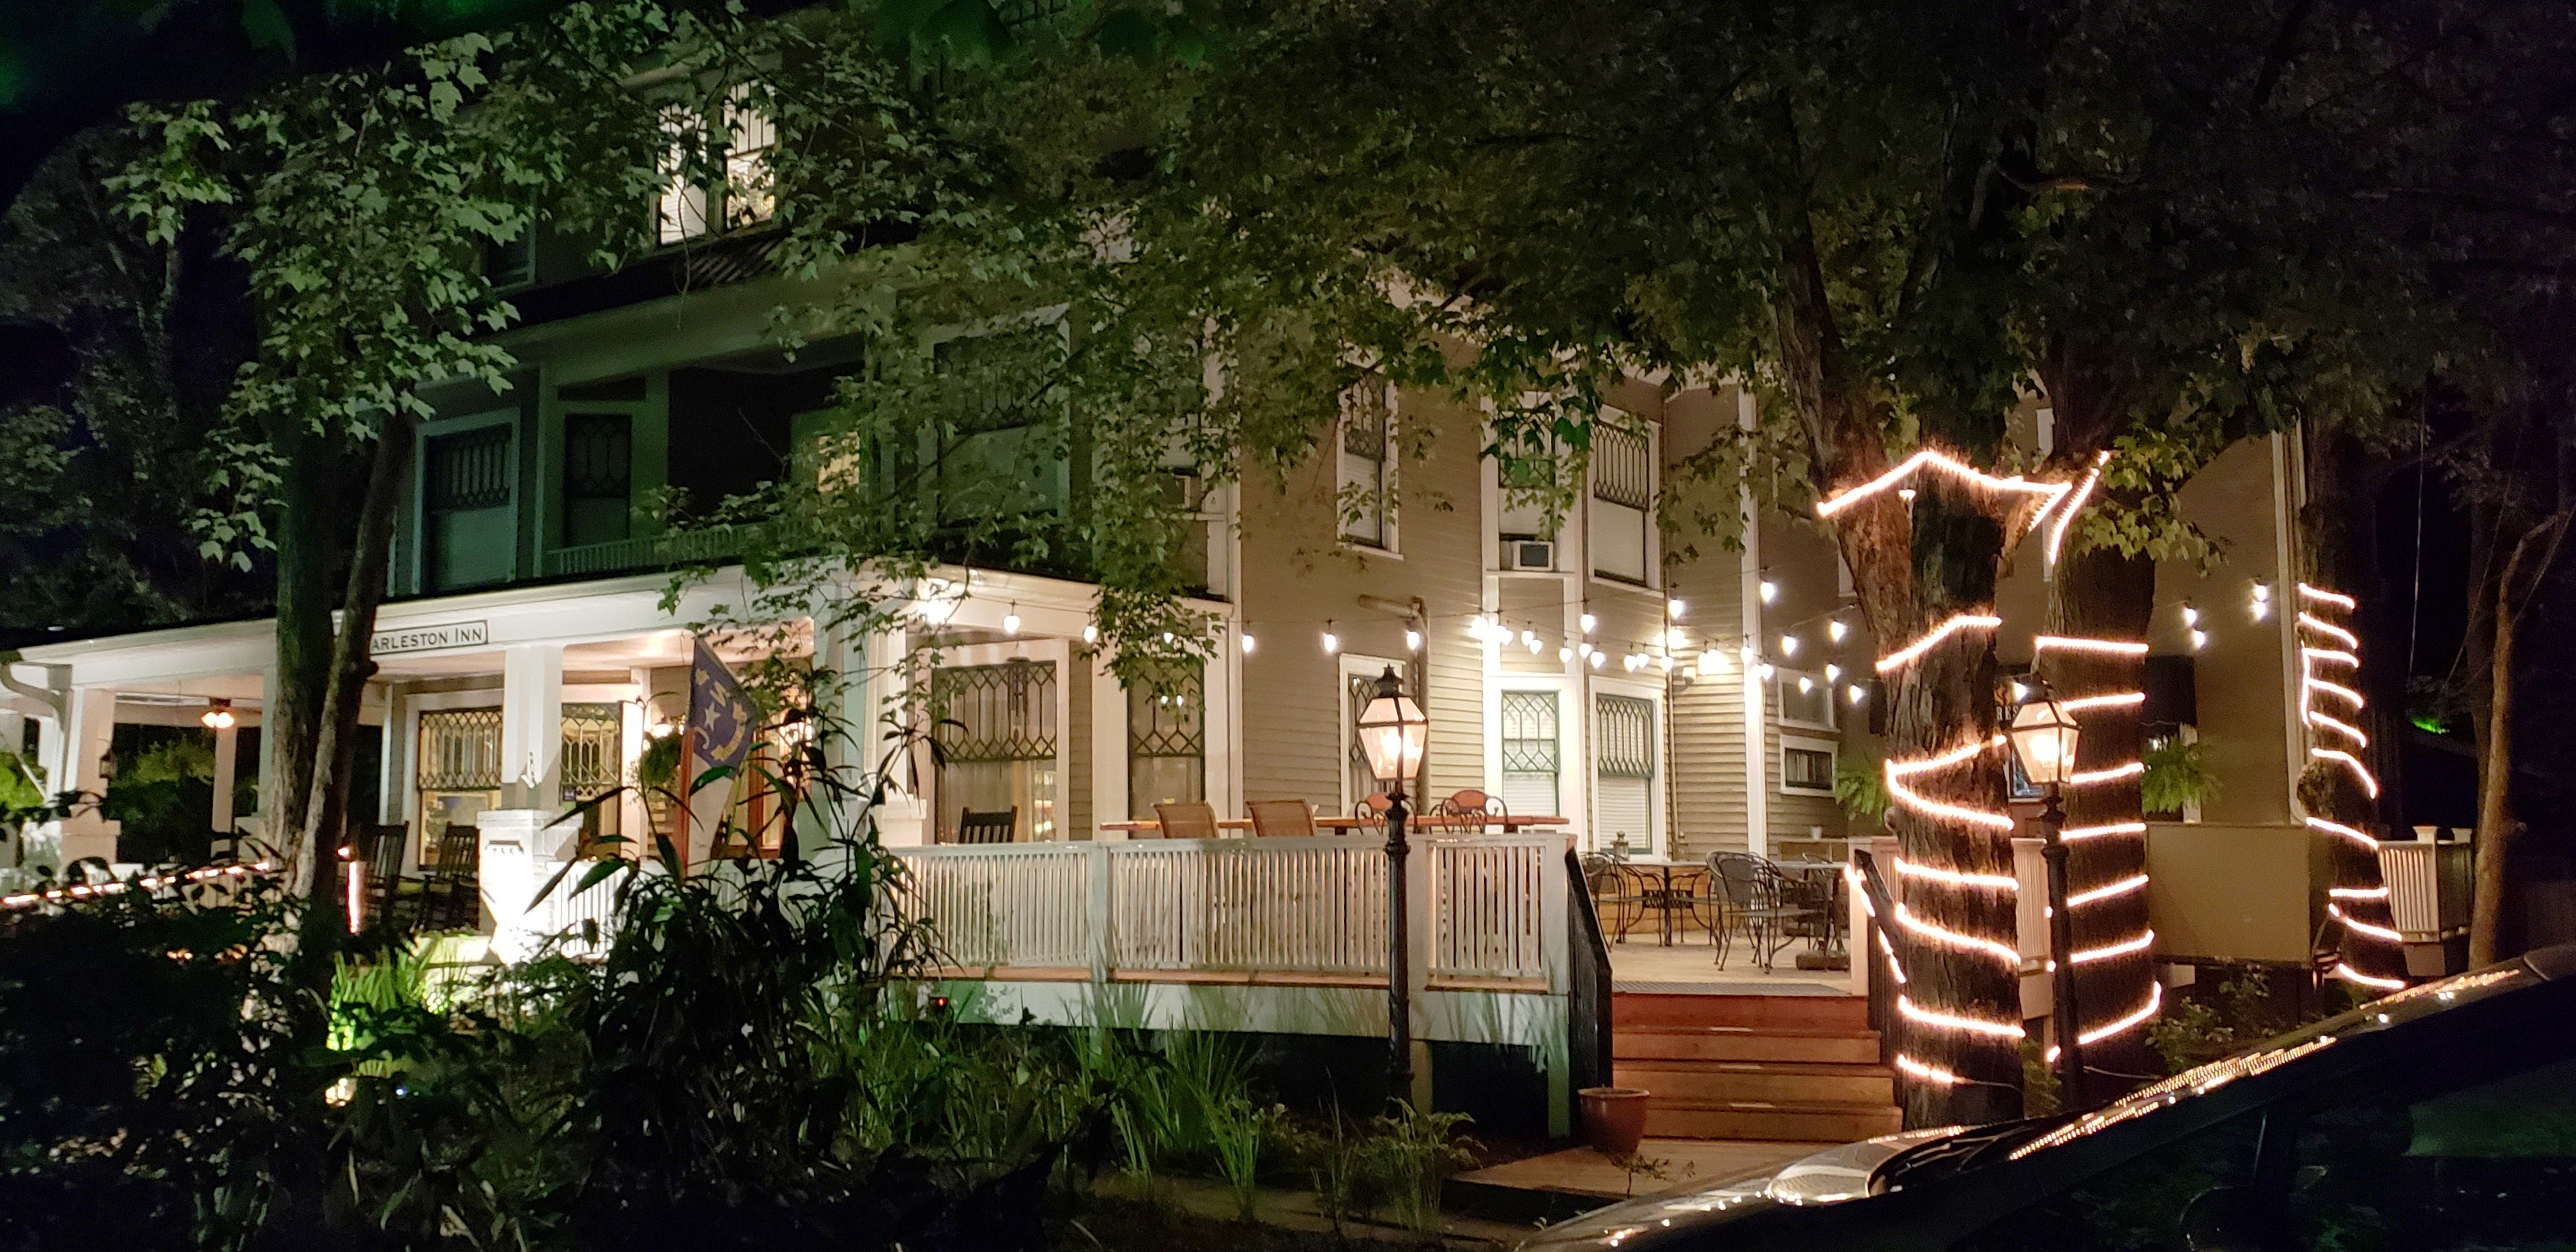 The Charleston Inn's Awesome Front Porches at Night!